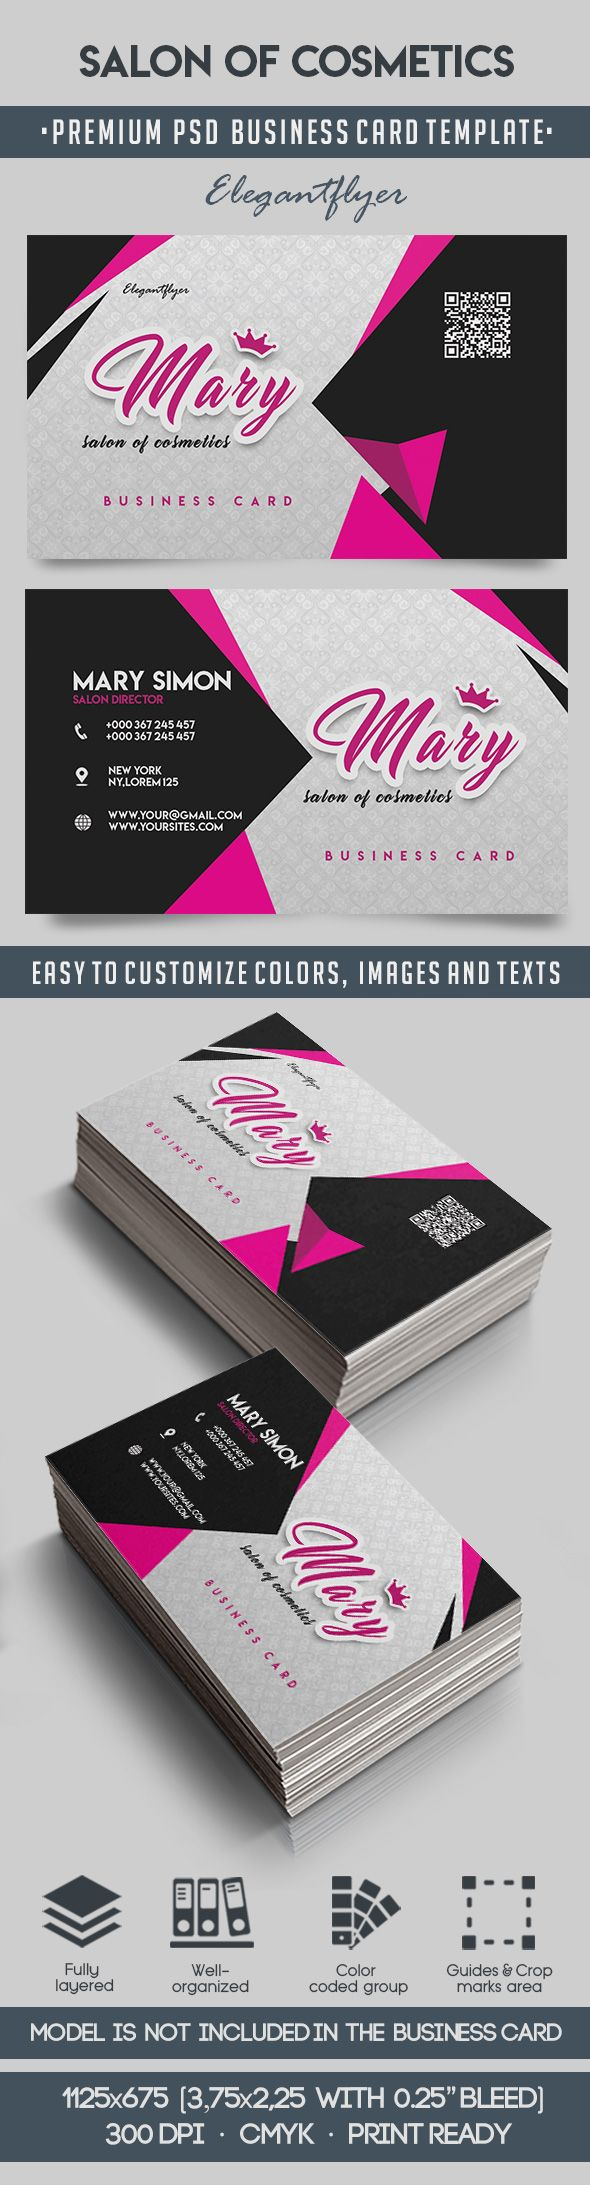 Salon Of Cosmetics – Premium Business Card Templates PSD – by ...